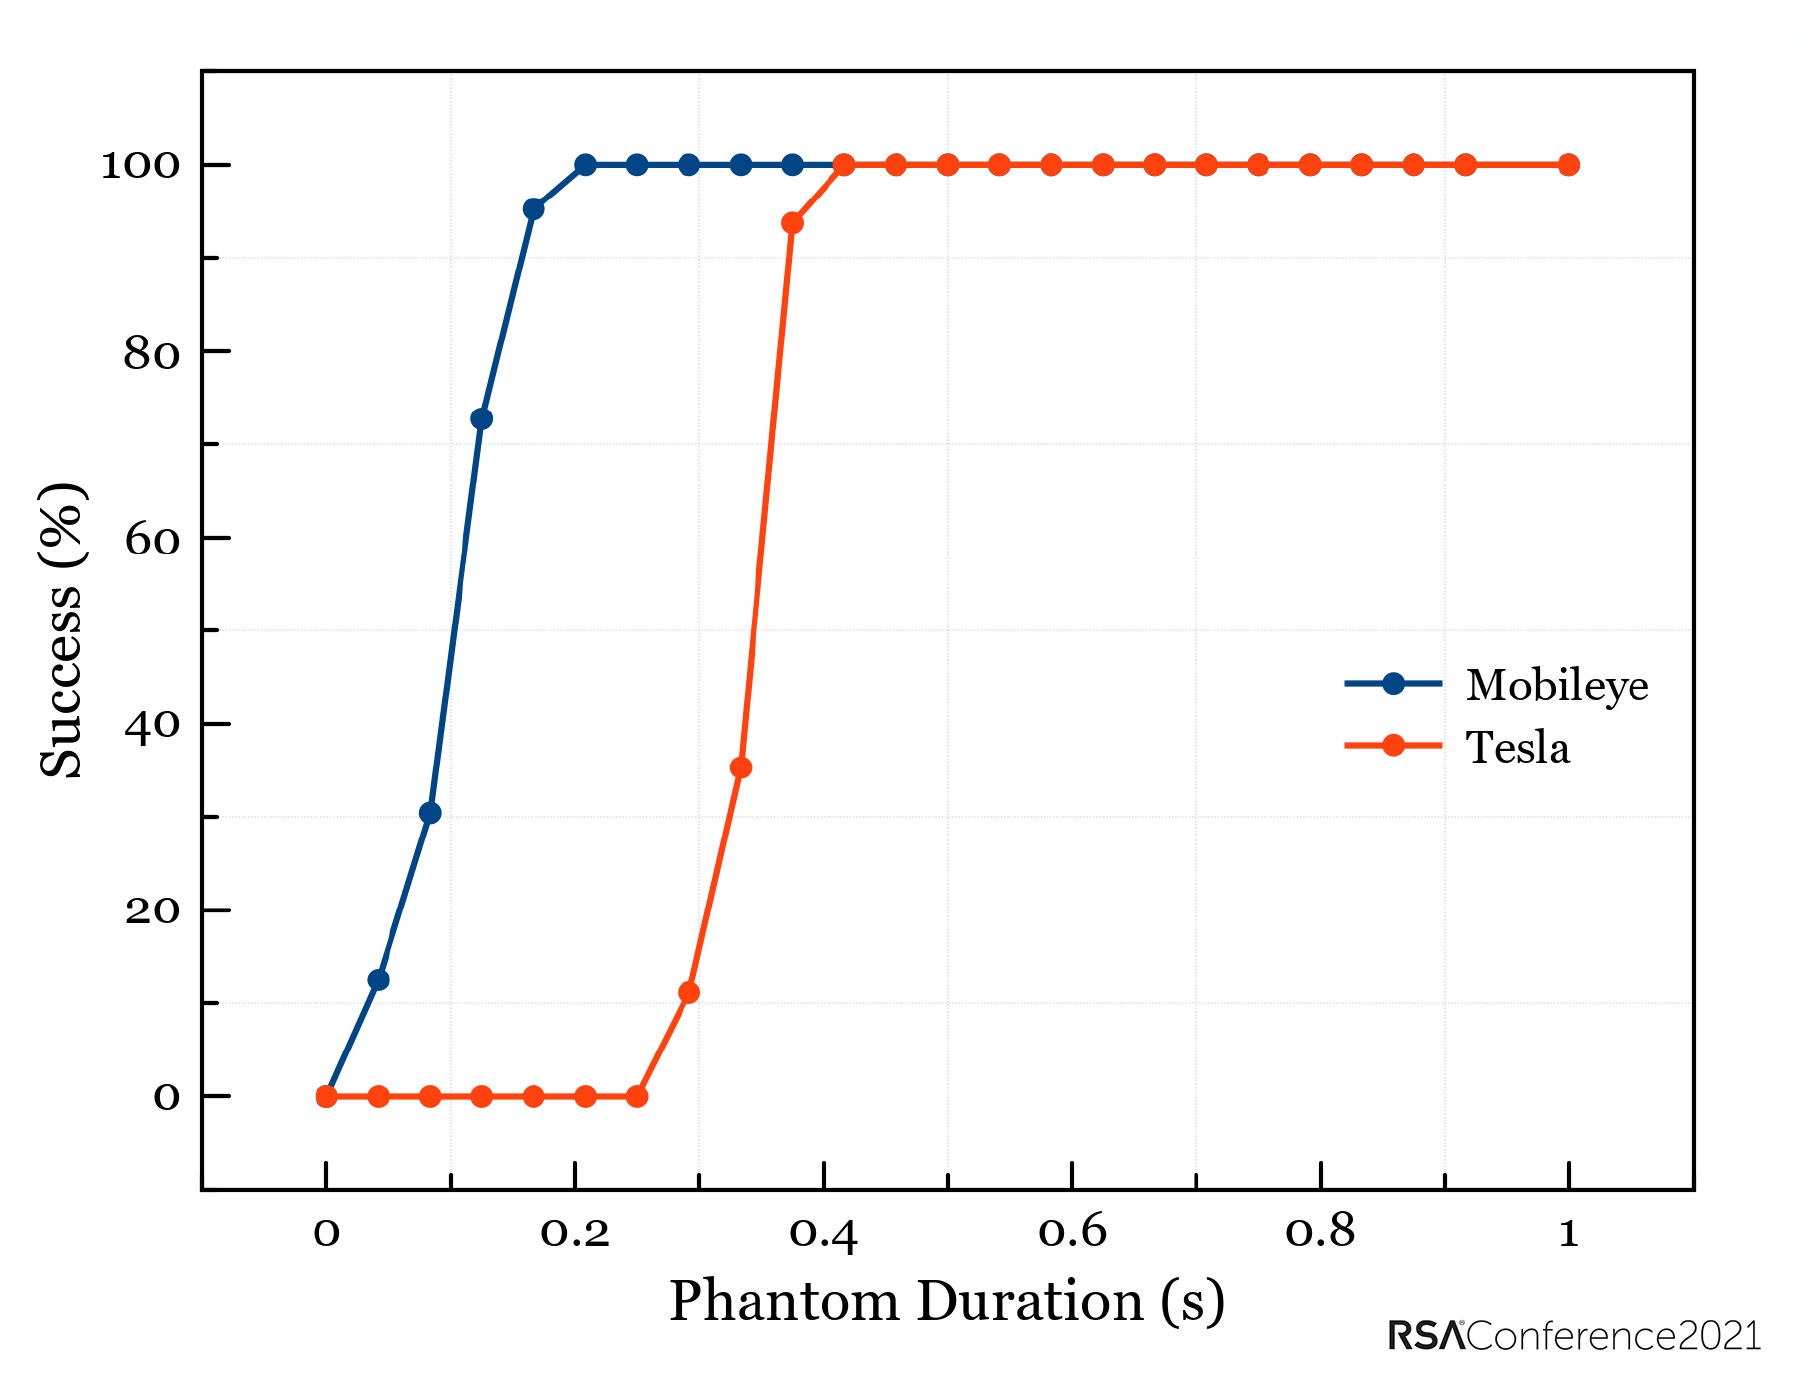 Reaction time of Tesla and Mobileye recognition systems to a phantom image